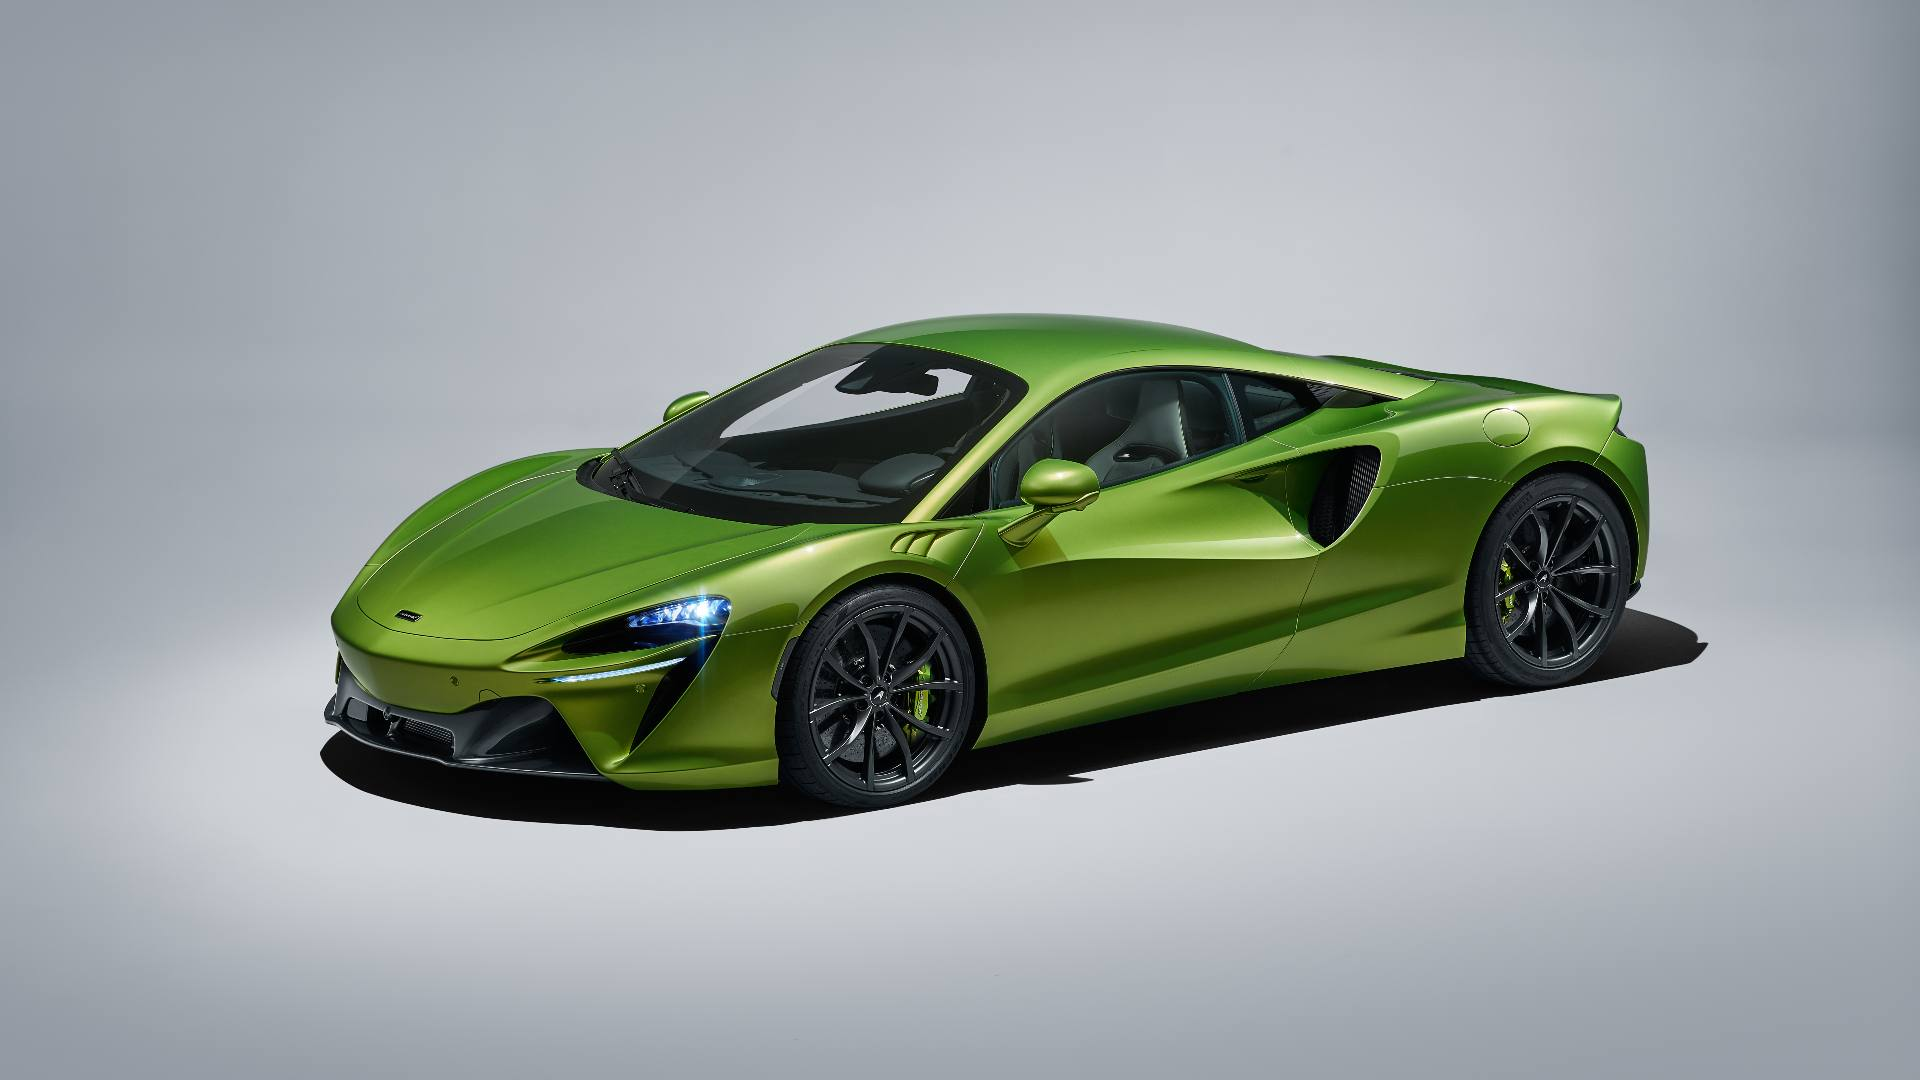 McLaren Artura revealed as the brand's first plug-in hybrid supercar, makes a combined 680 hp